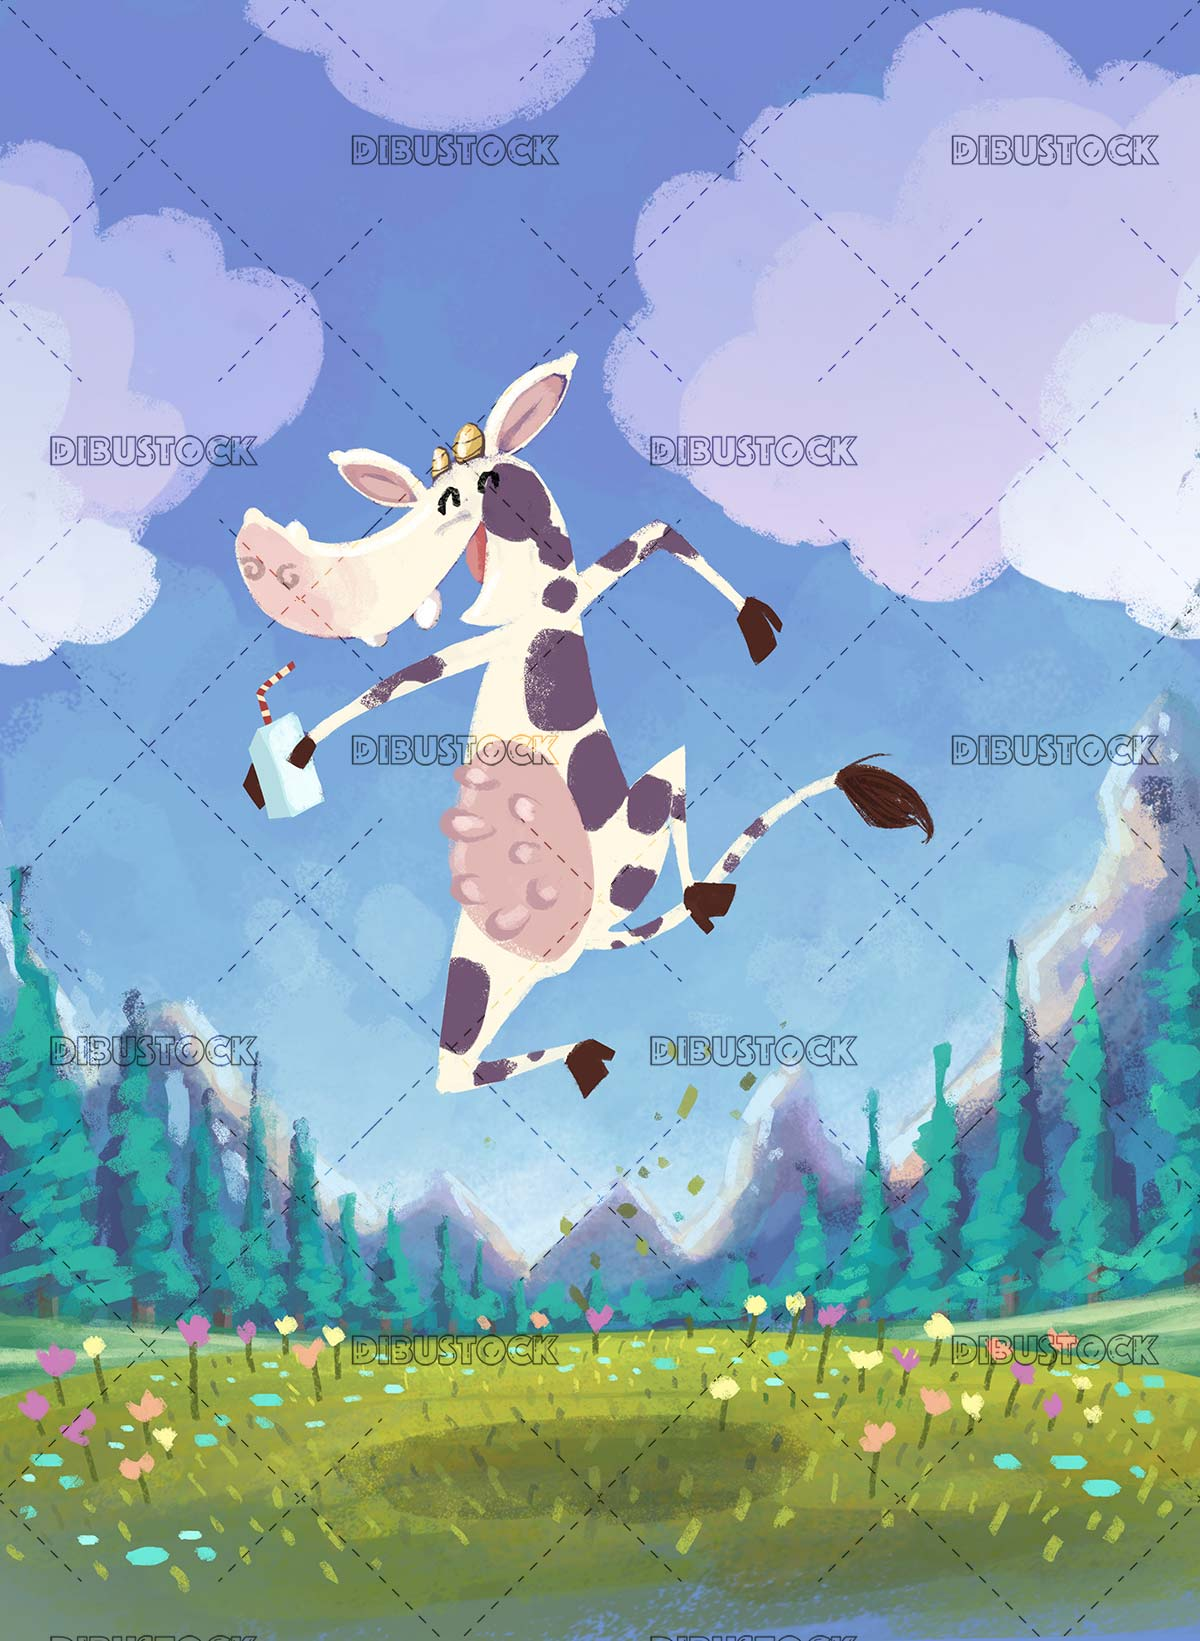 Cow jumping with a tetrabrik in a meadow